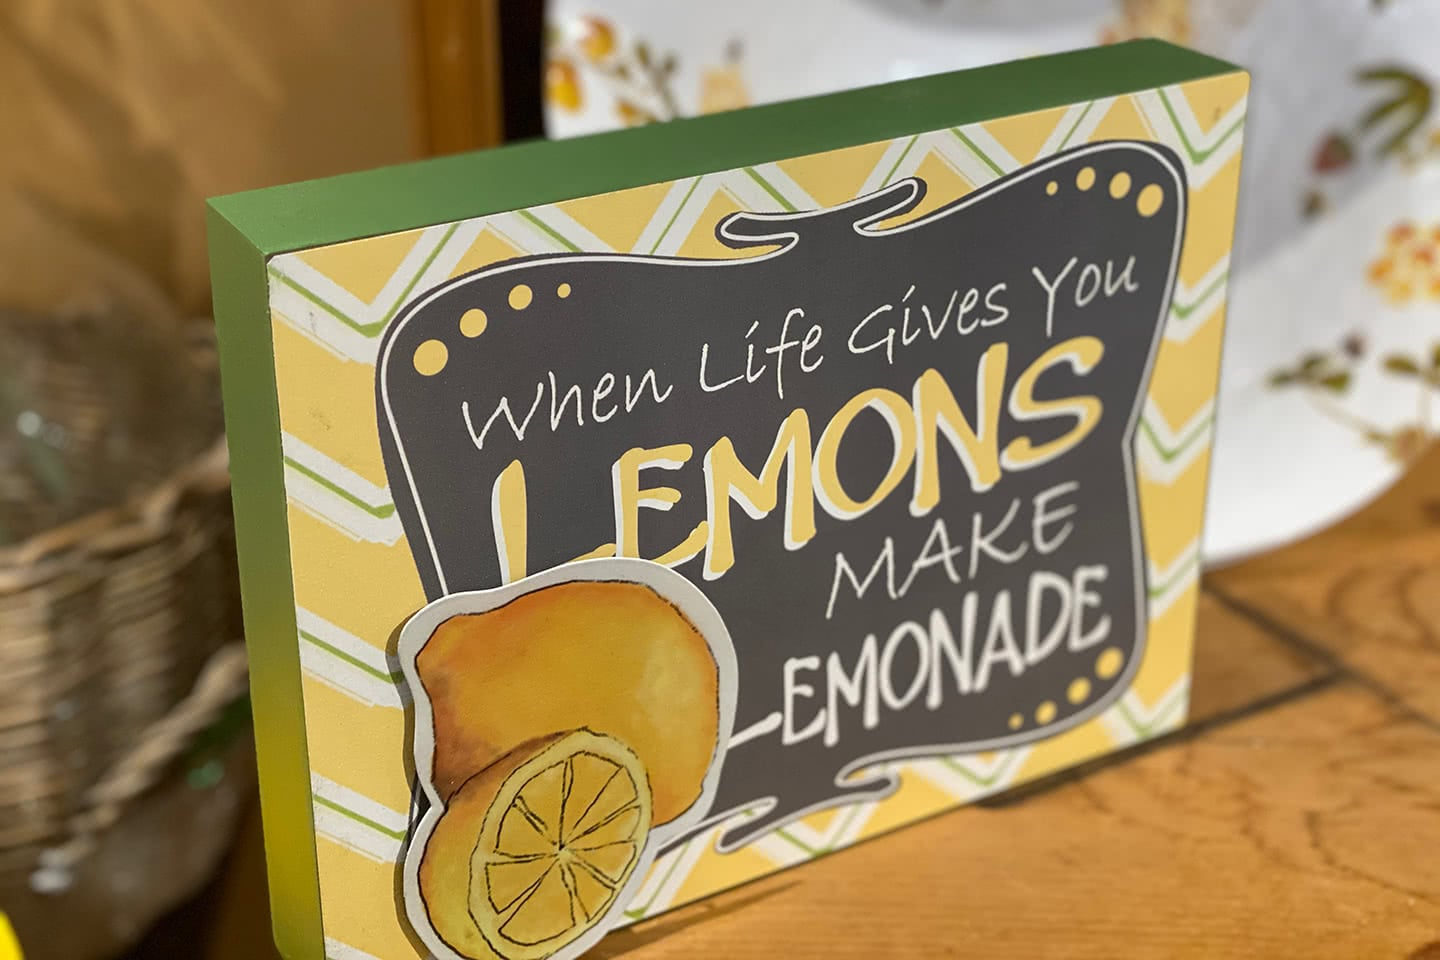 When life give you lemons make lemonade